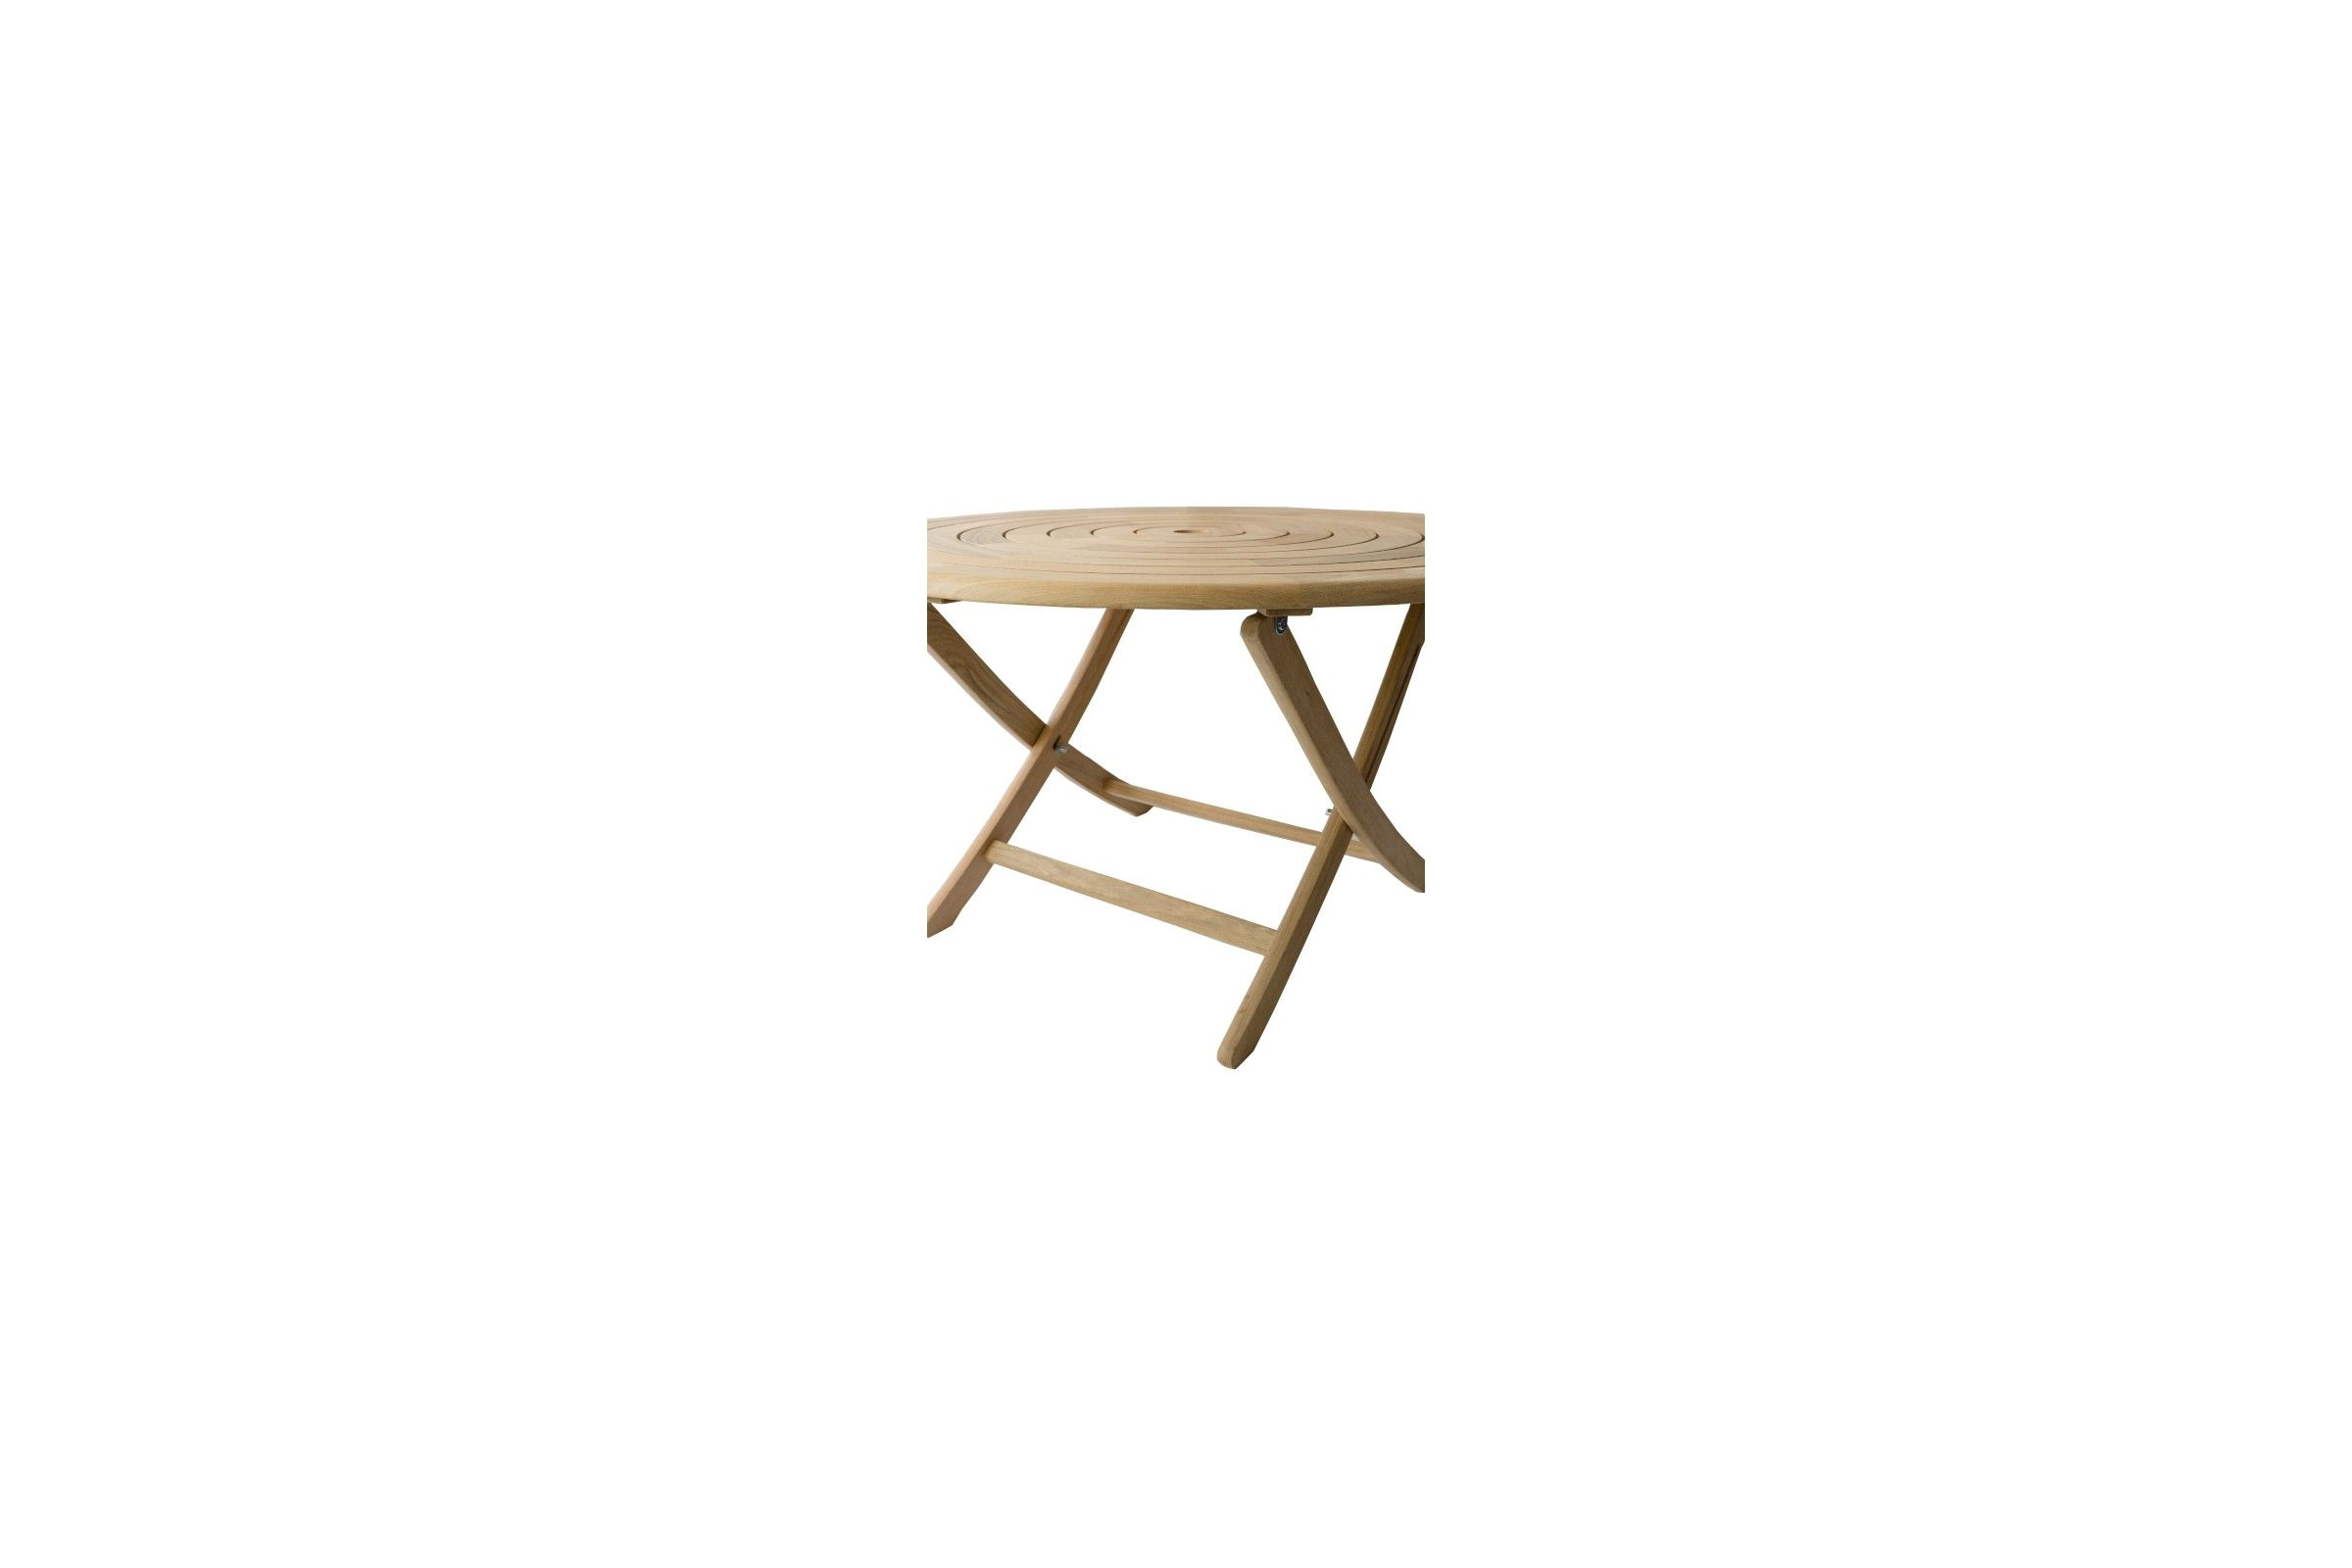 table de jardin pliante et ronde 130 cm en bois massif haut de gamme. Black Bedroom Furniture Sets. Home Design Ideas